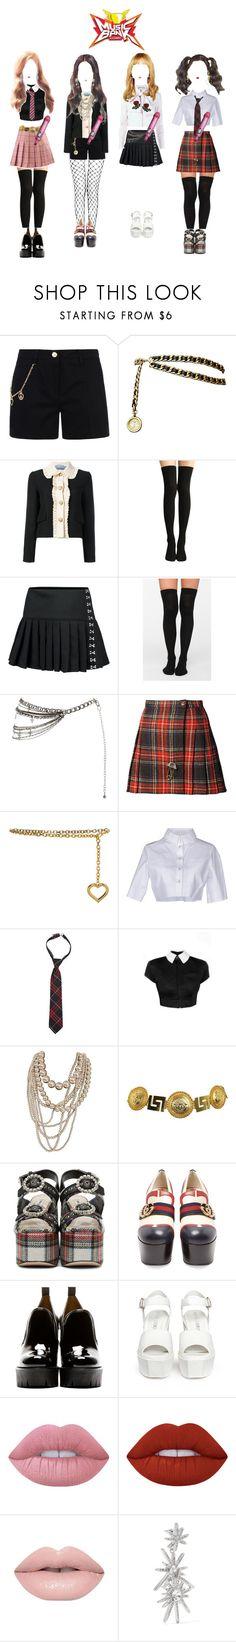 """《Music Bank》BitterSweet {War of Hearts} COMEBACK"" by bittersweet-official ❤ liked on Polyvore featuring Love Moschino, Chanel, Gucci, Yves Saint Laurent, Alessandra Rich, Alexander Wang, French Toast, Versace, Miu Miu and Marc by Marc Jacobs"